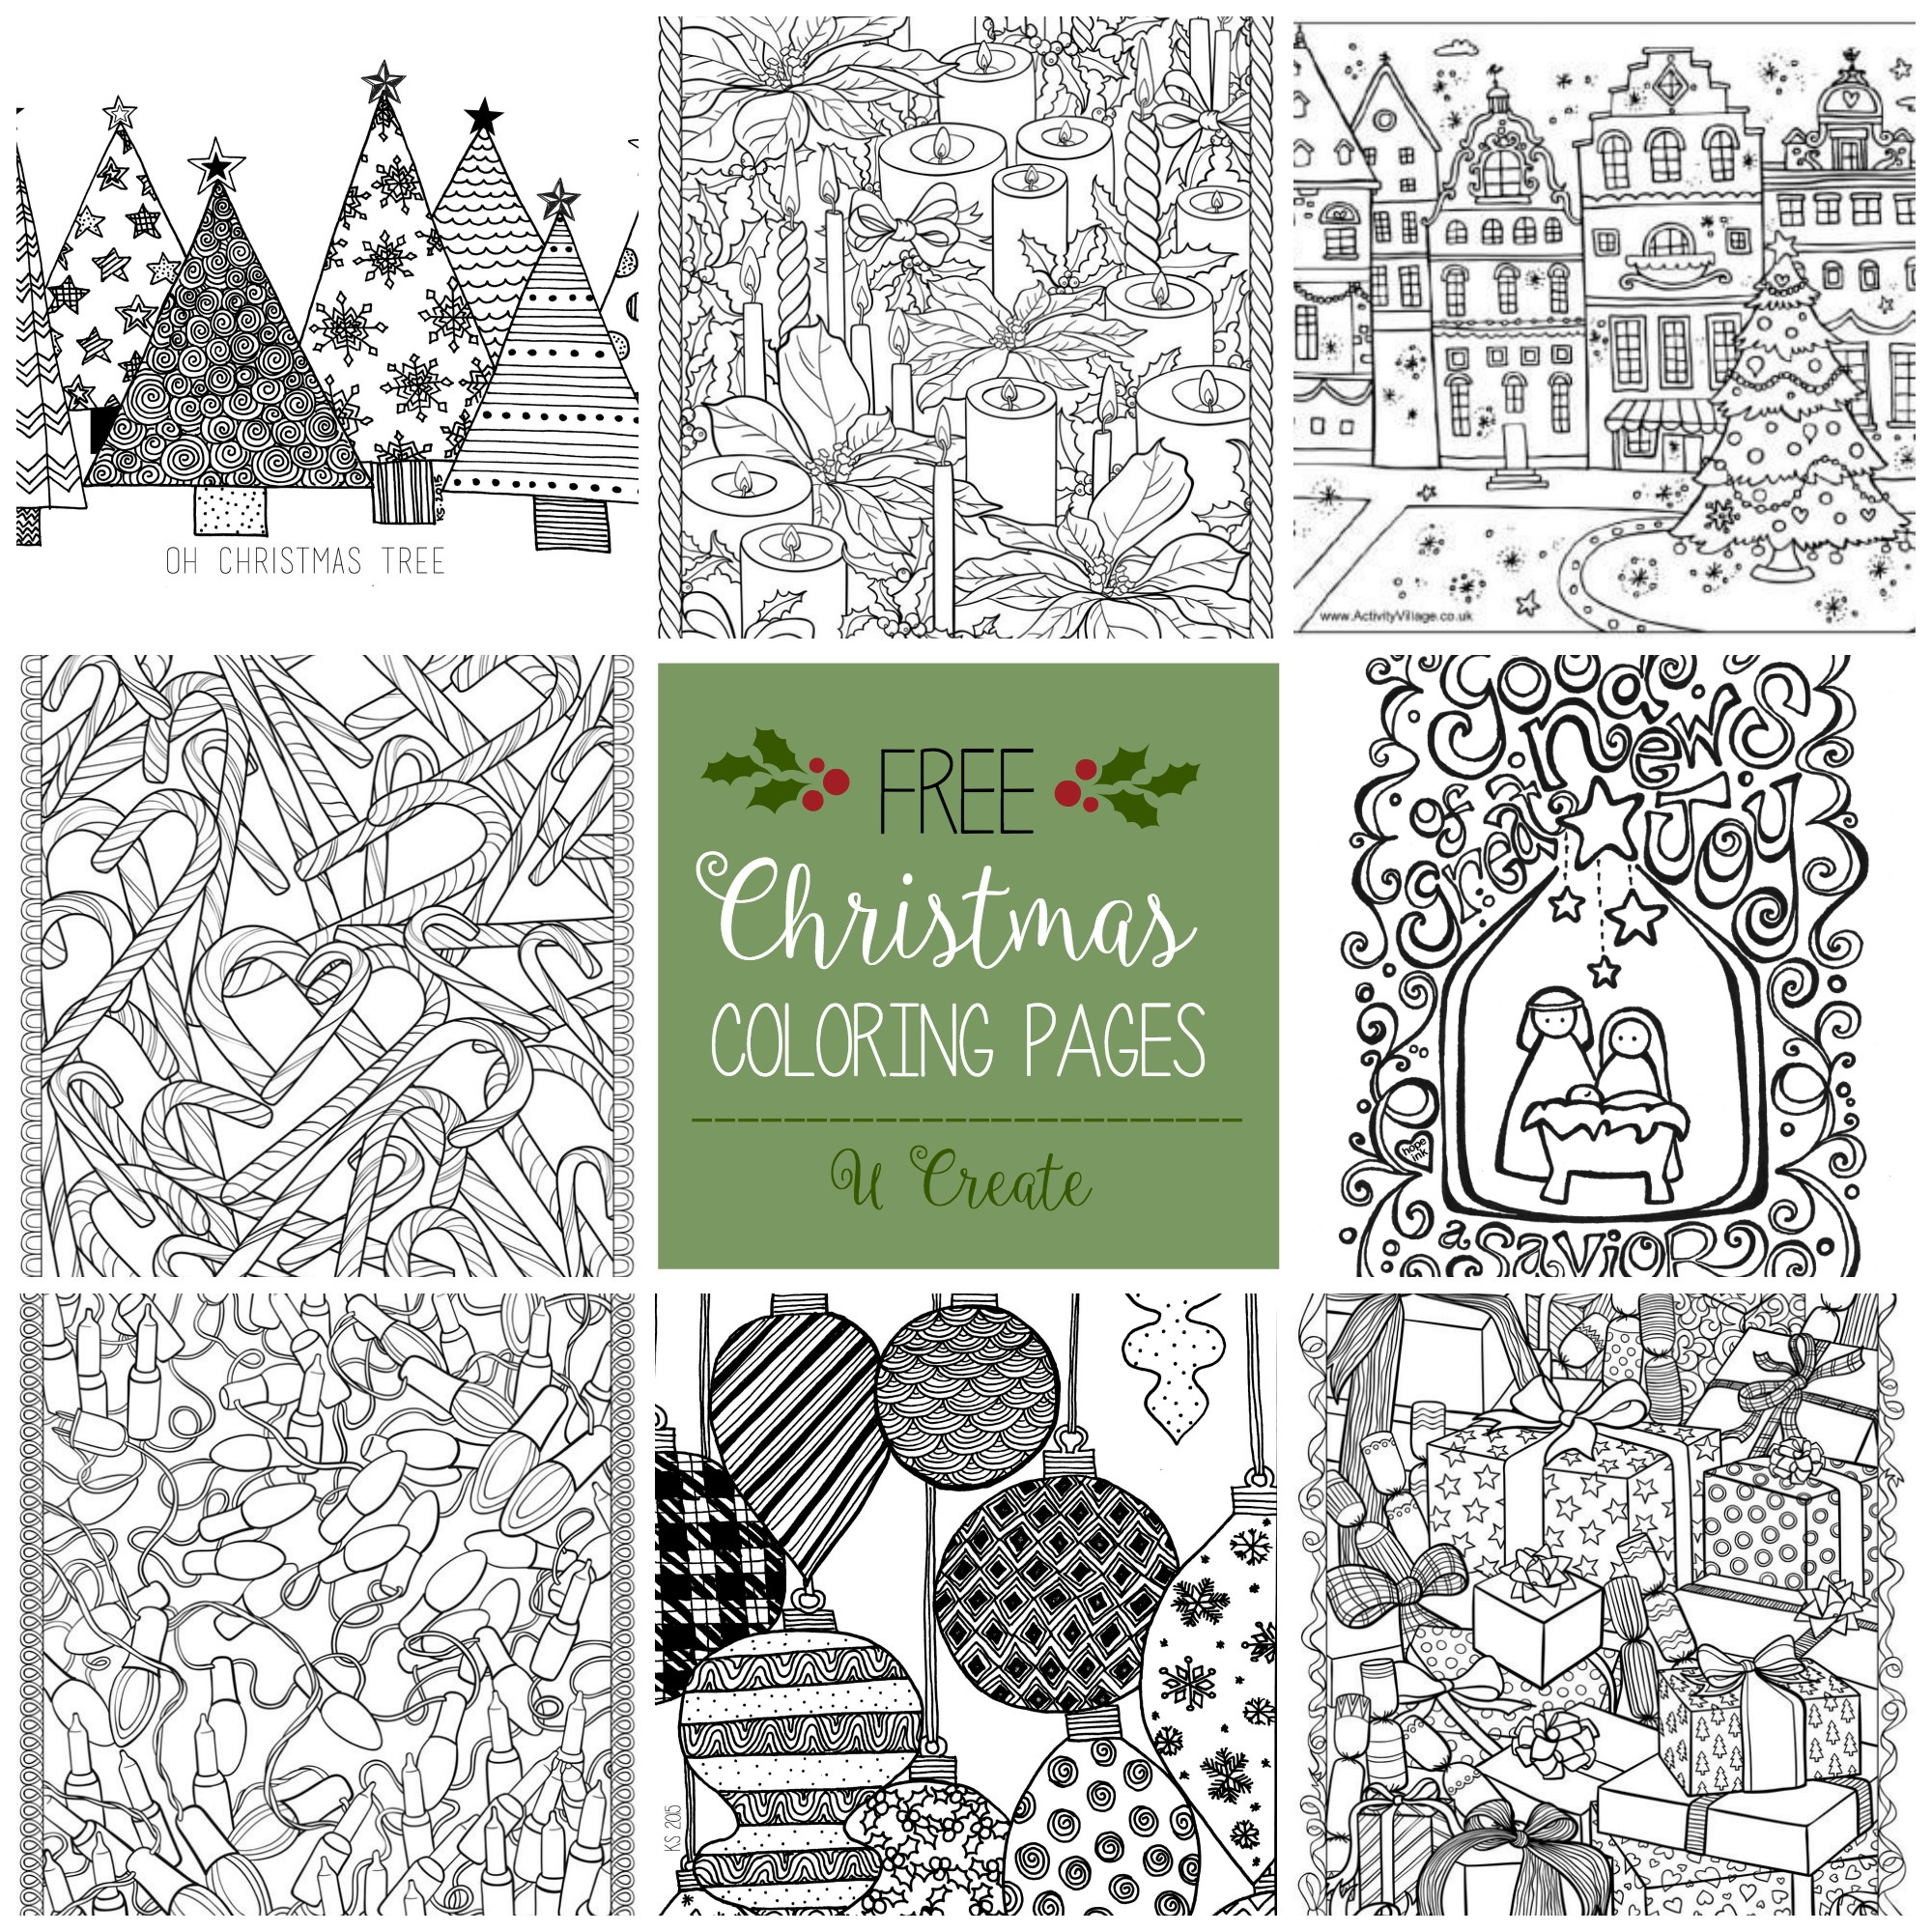 free christmas adult coloring pages u create. Black Bedroom Furniture Sets. Home Design Ideas